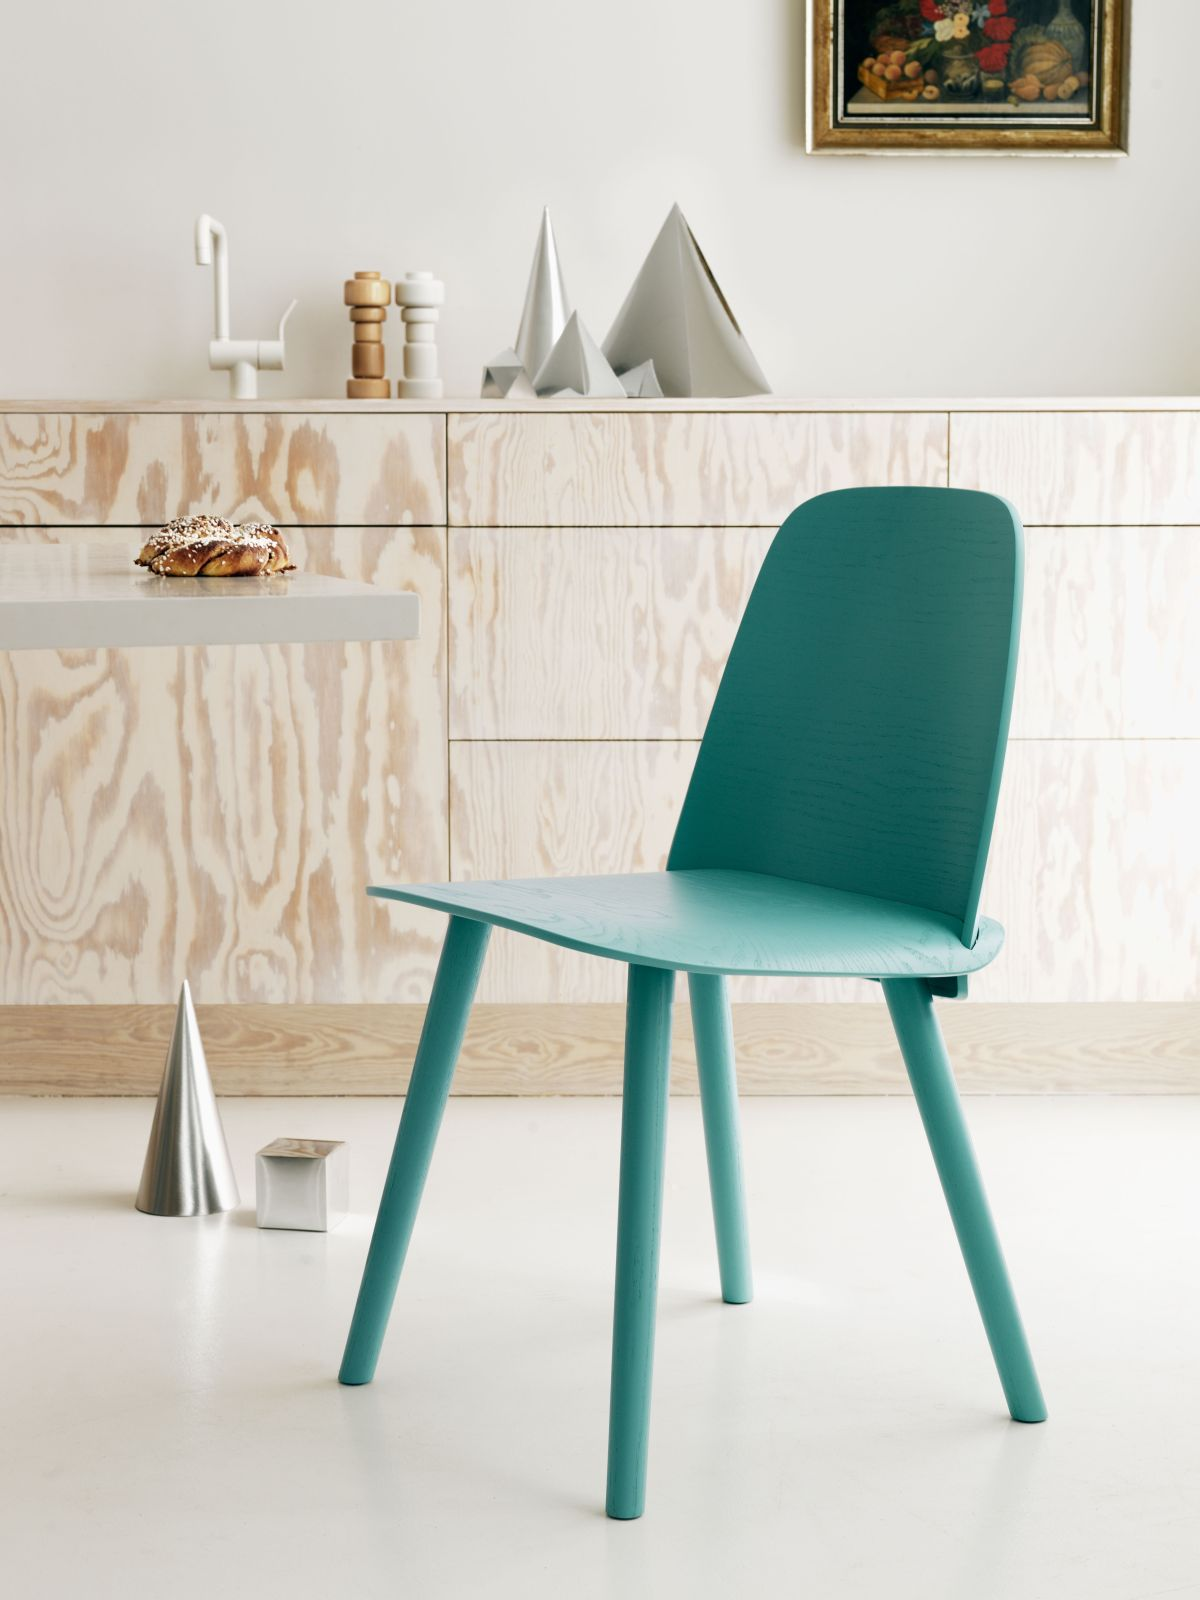 scandinavian furniture style. Minimalist Painted Chair To Achieve Scandinavian Style Furniture